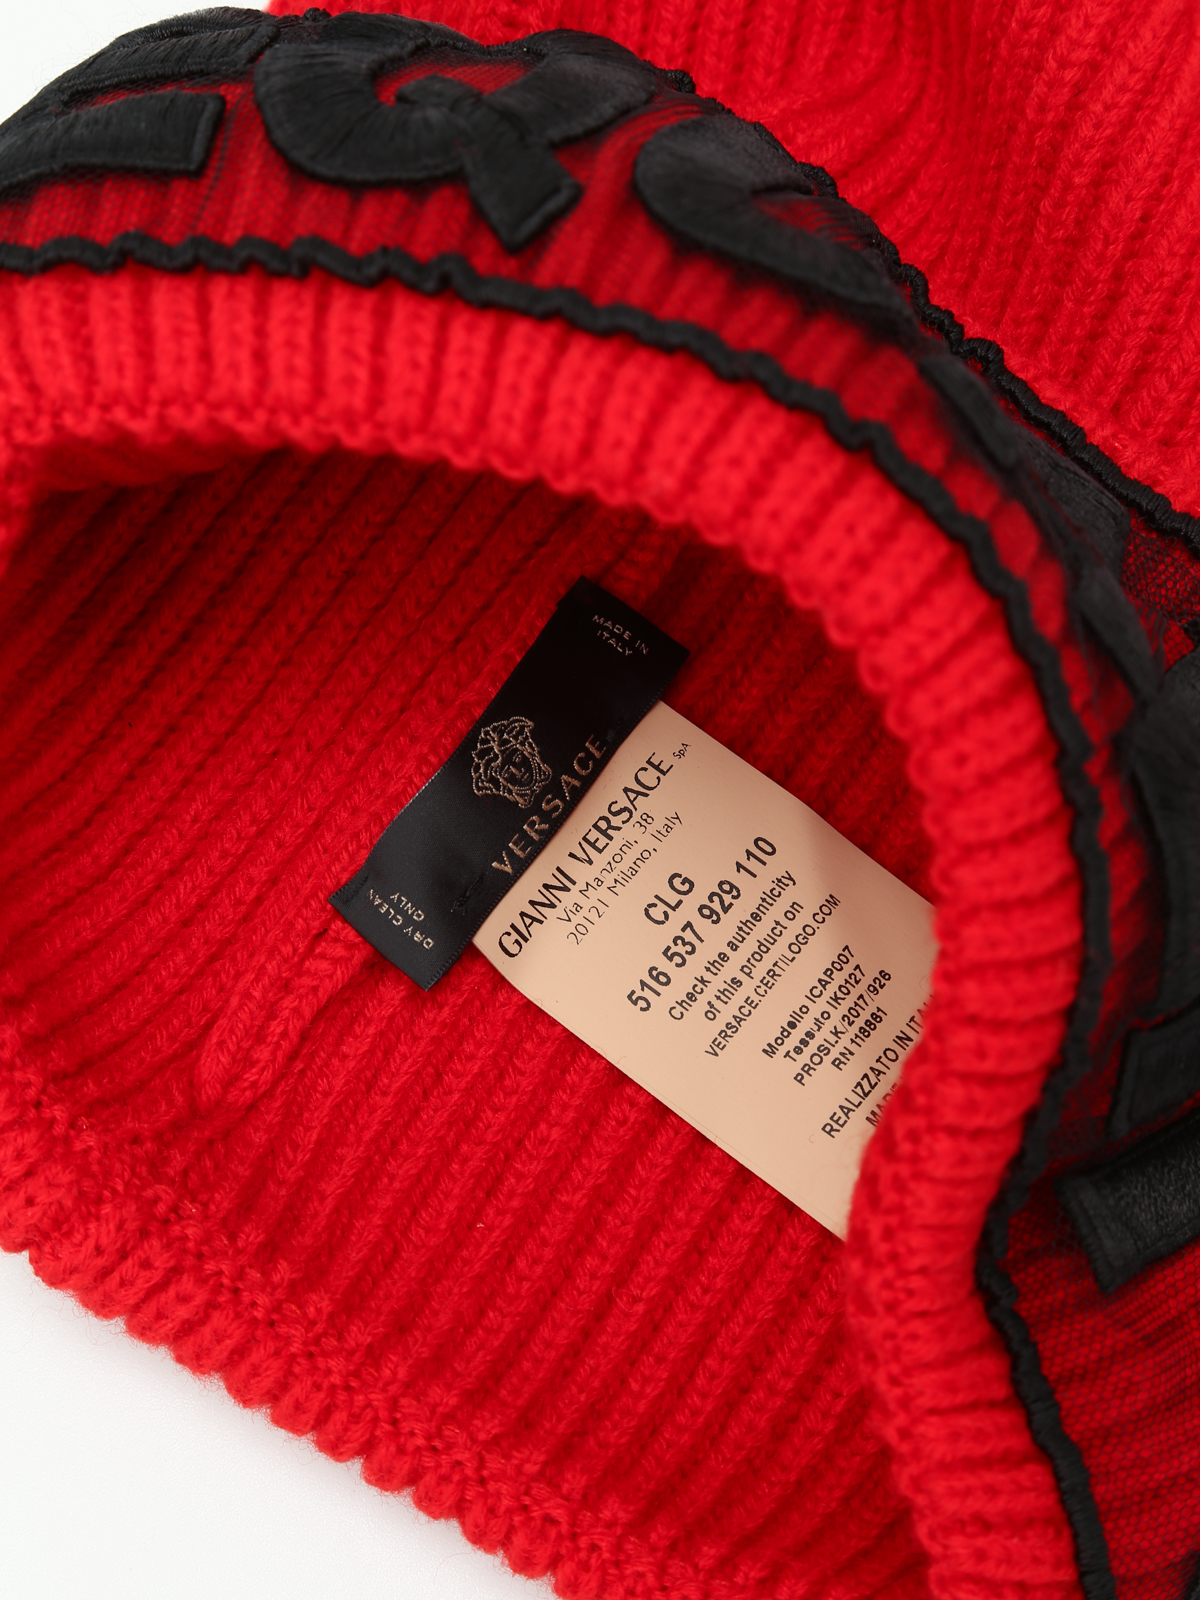 30560b34121 Versace - Equality knitted wool beanie - beanies - ICAP007IK0127I497